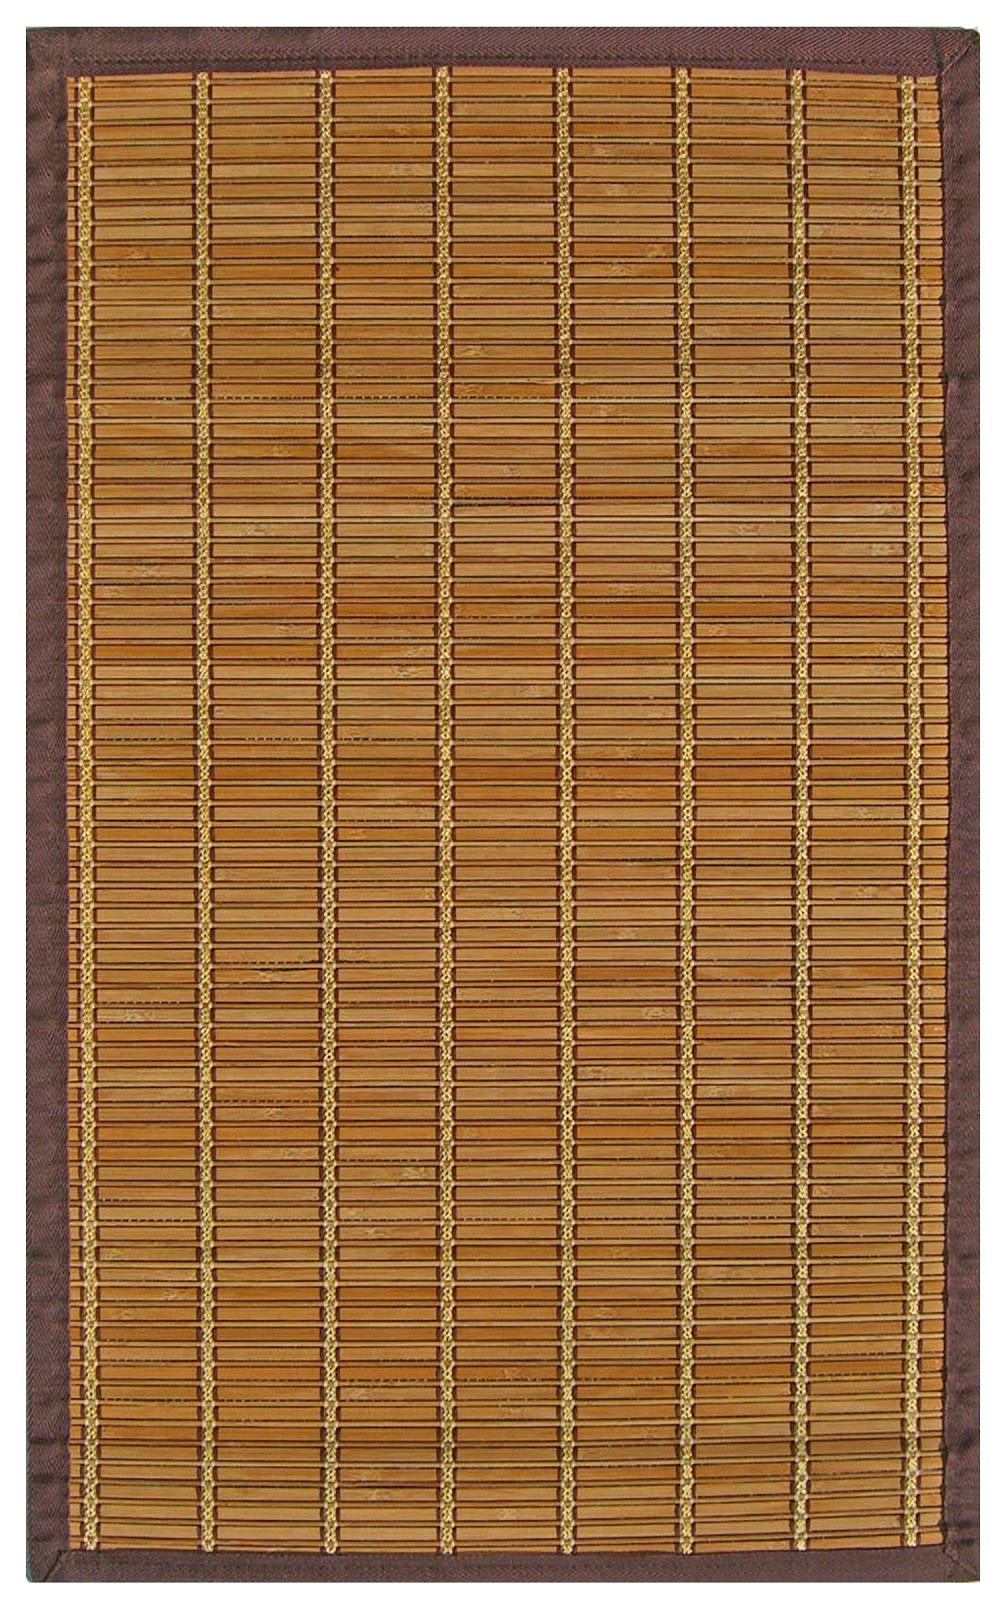 Bamboo Rugs Bamboo Valance Photo